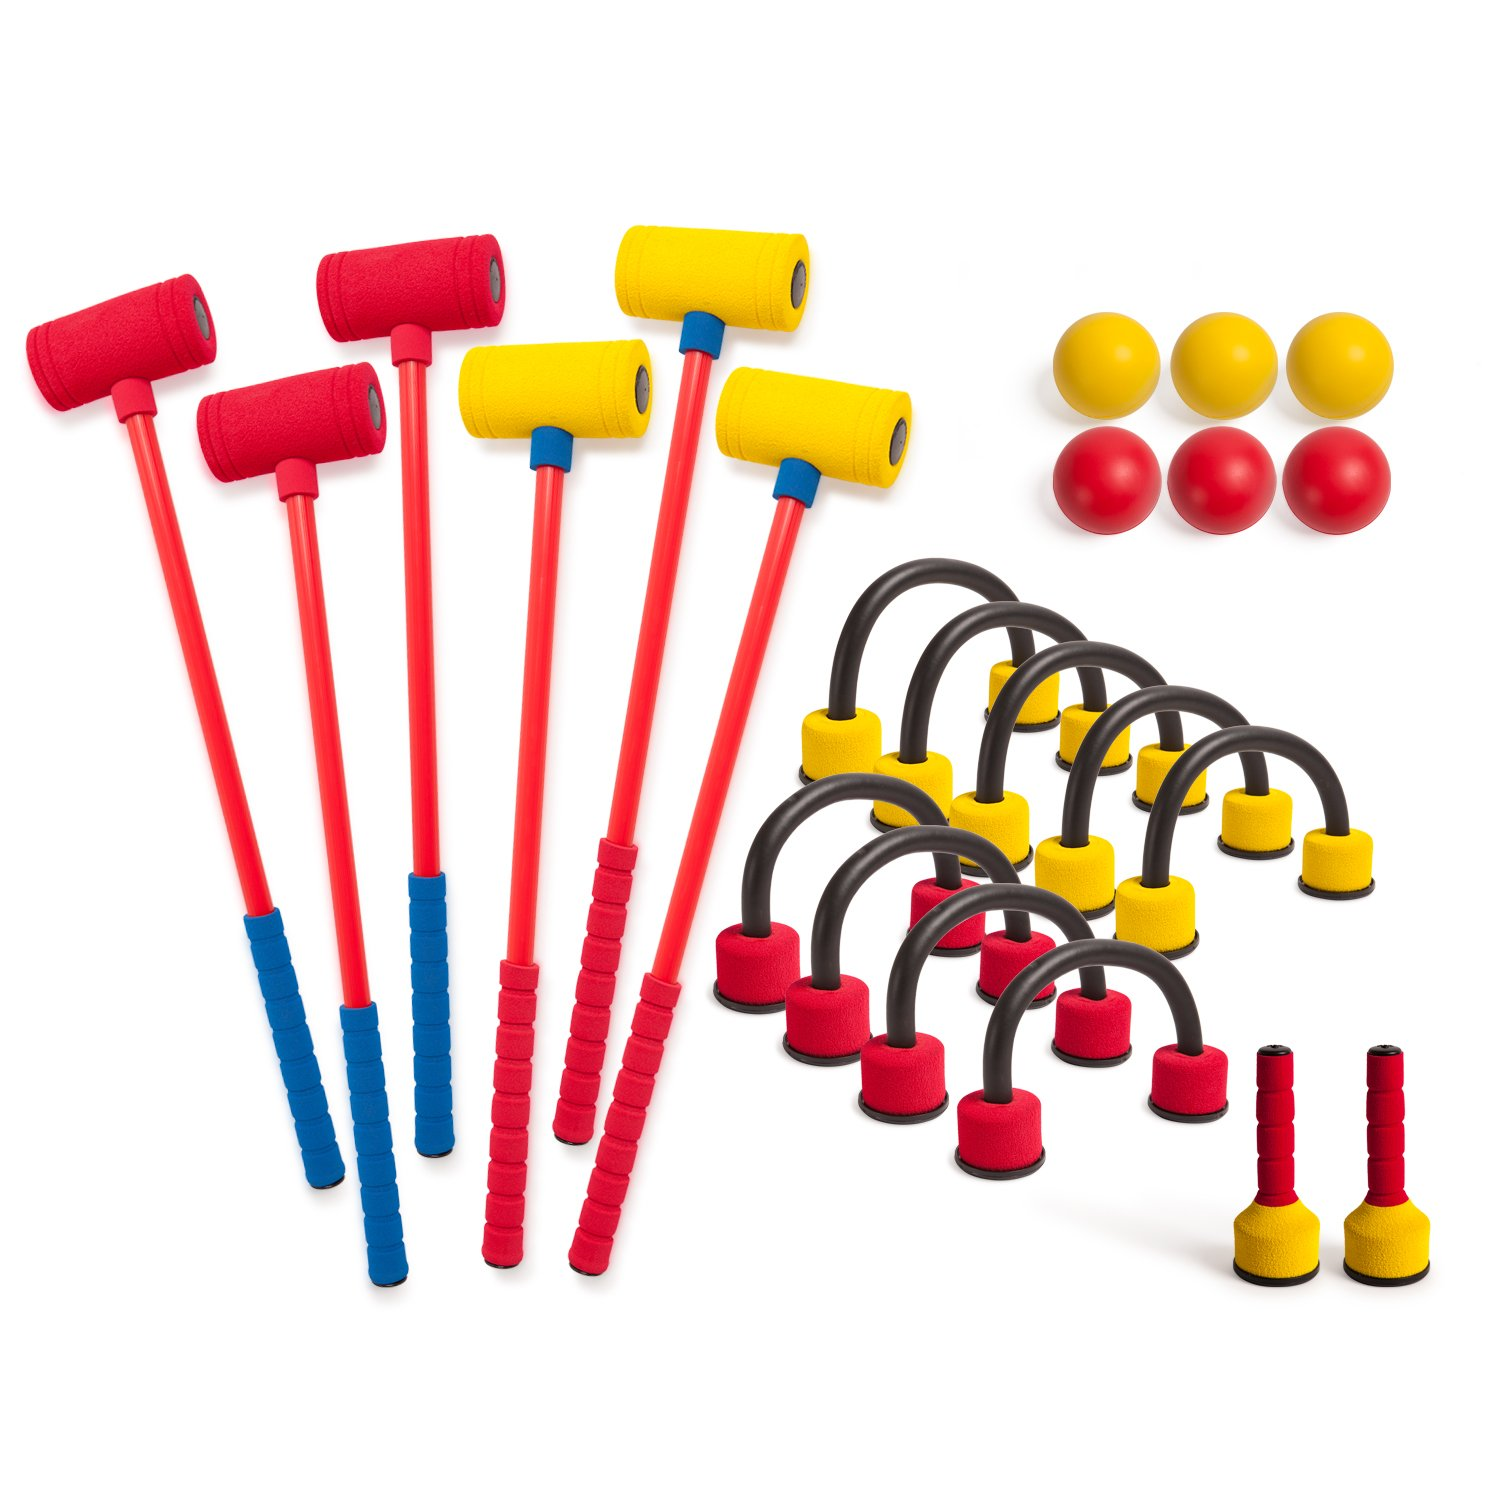 Champion Sports Foam Croquet Set: Classic Outdoor Lawn and Party Game For Kids - 6 Player Sets with Soft Wickets Stakes & Mallets by Champion Sports